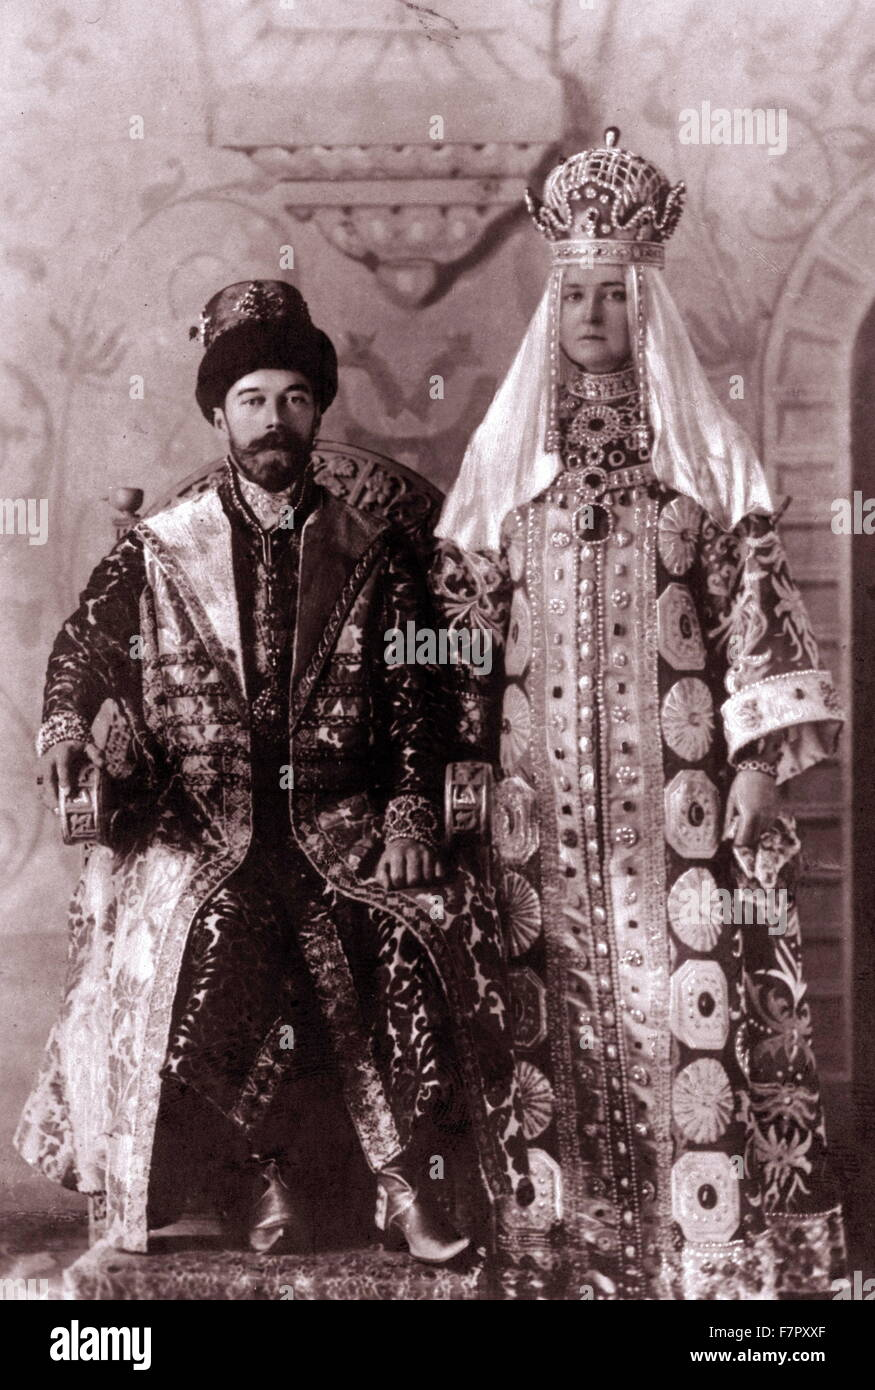 Tsar Nicholas II and empress Alexandra in coronation robes, Russia 1894 - Stock Image